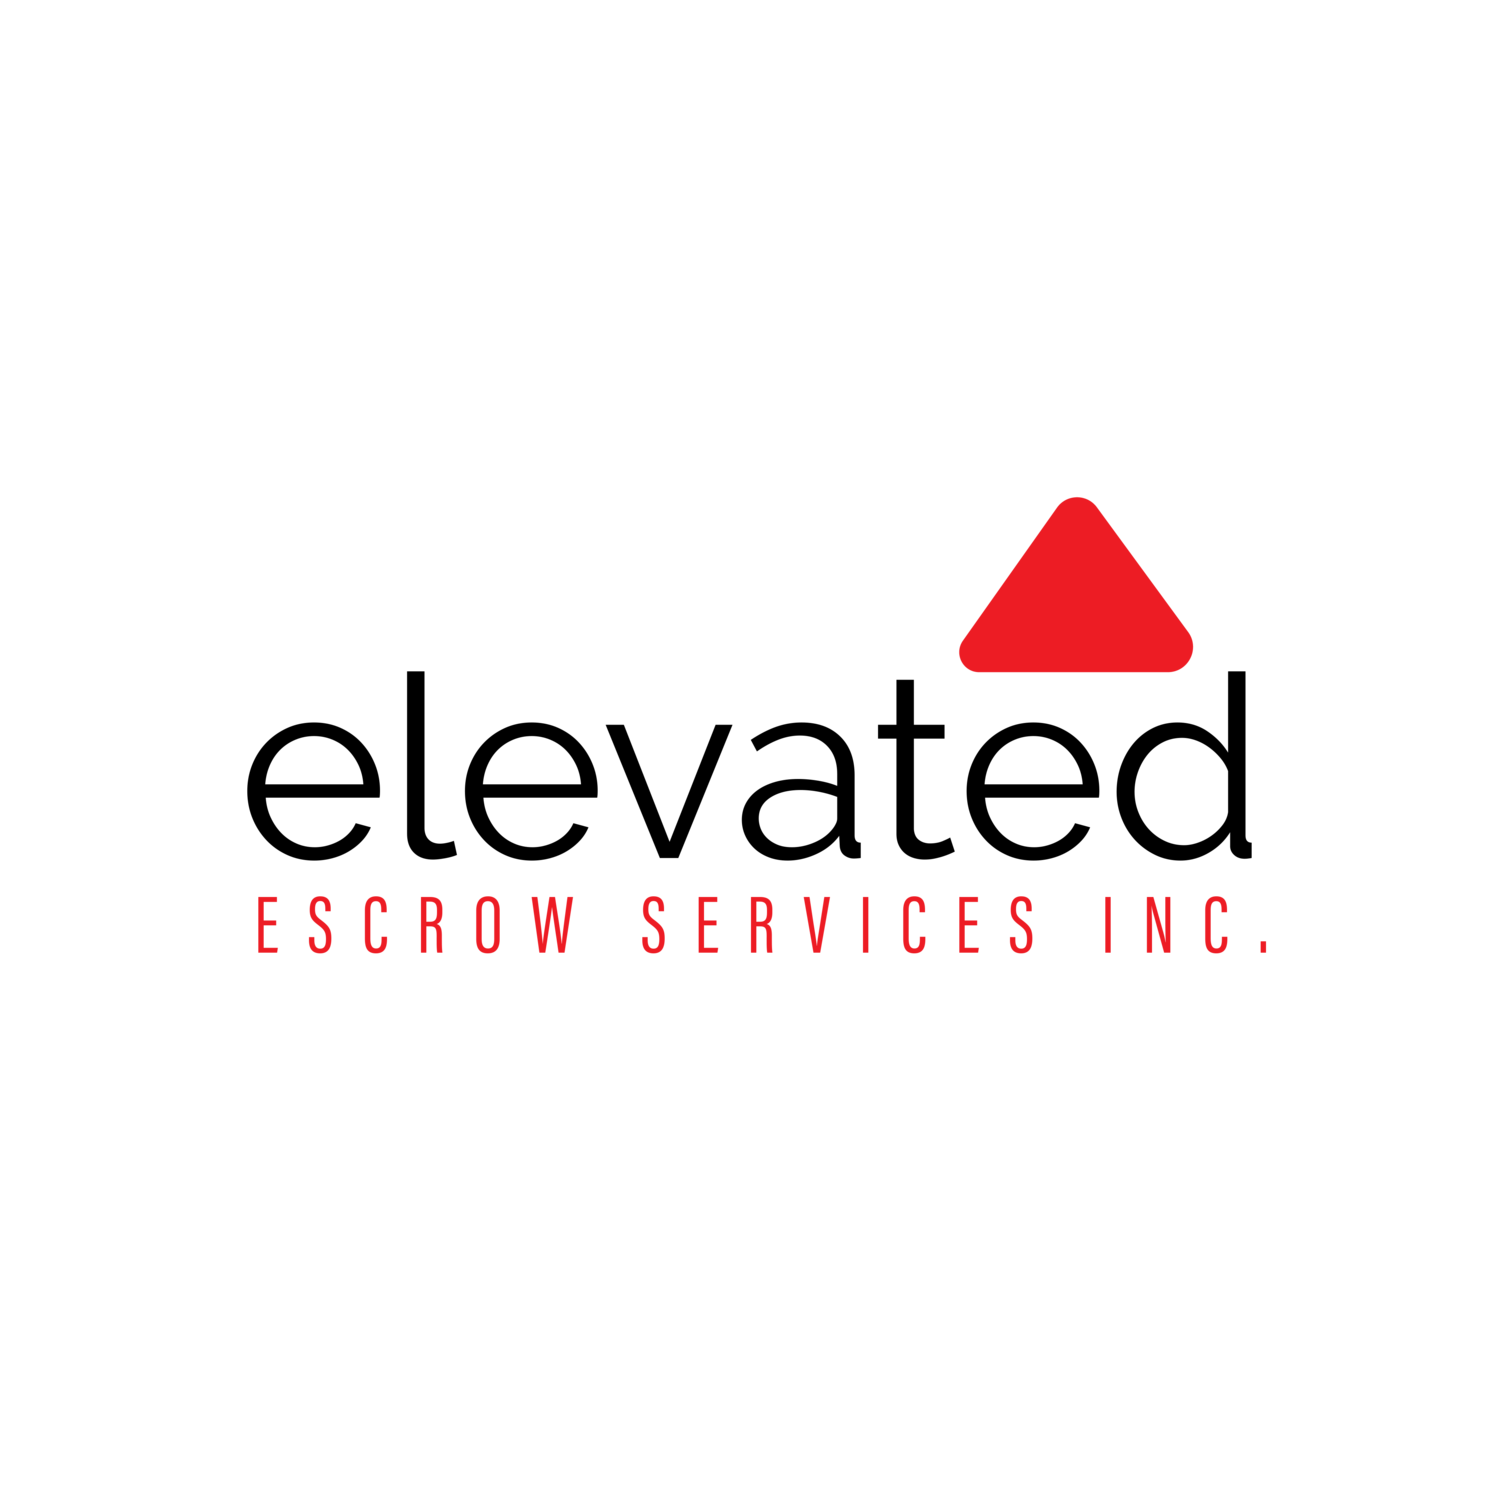 Elevated Escrow Services